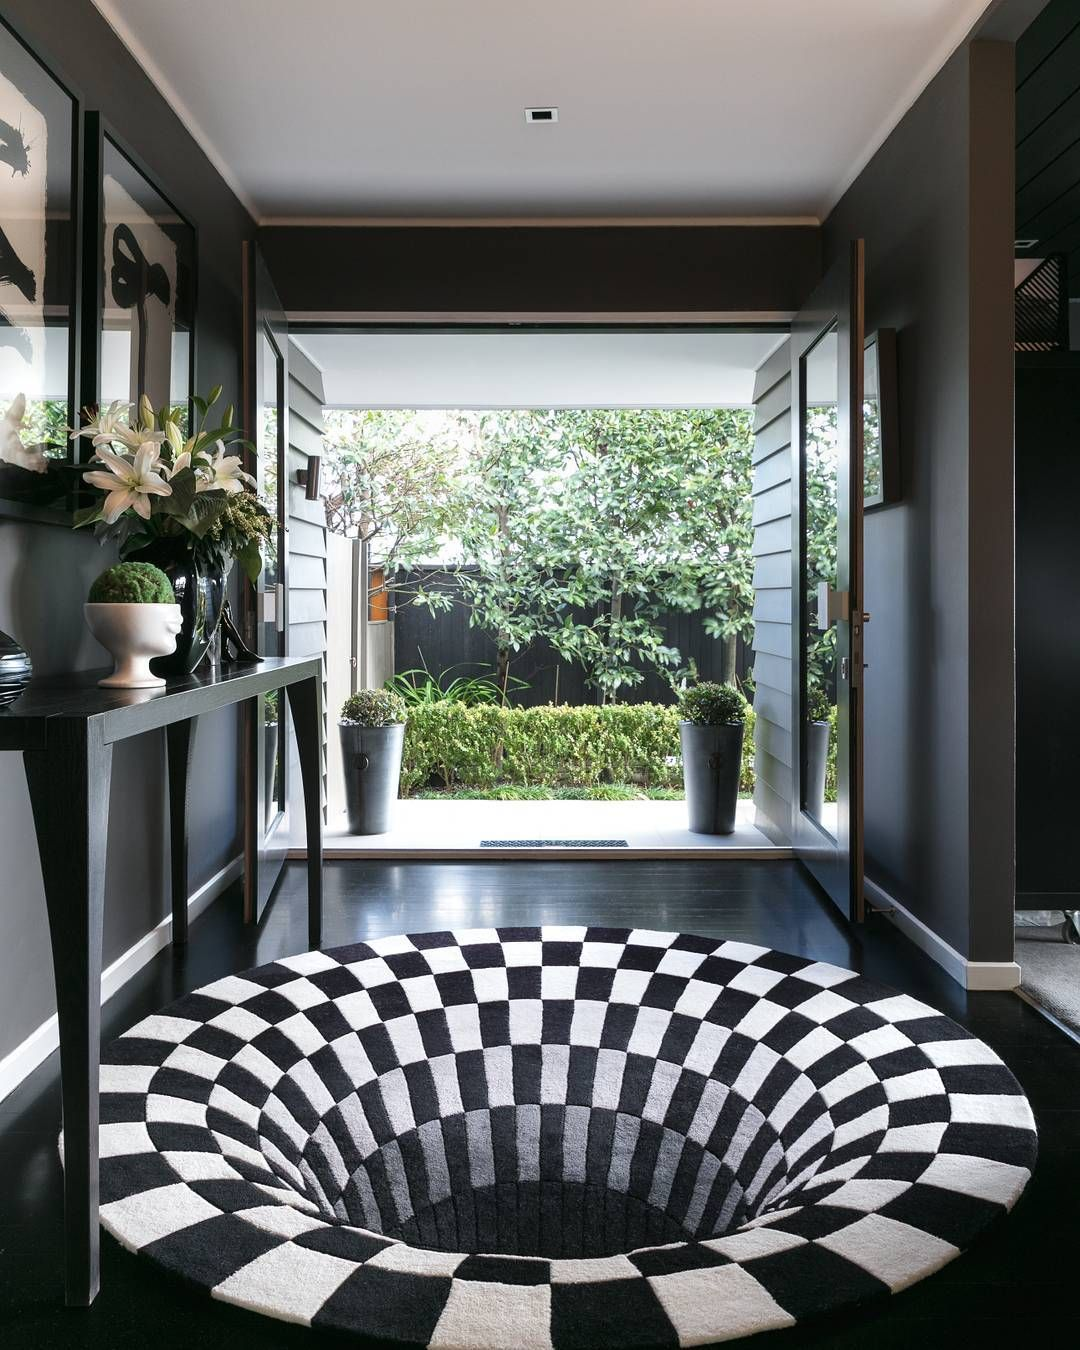 Down The Rabbit Hole Our Ever Popular Black Hole Rug By Daniel Malik Creates A Totally Unique Entrance To This Home By Seaga Cool Rugs Rug Design Perfect Rug